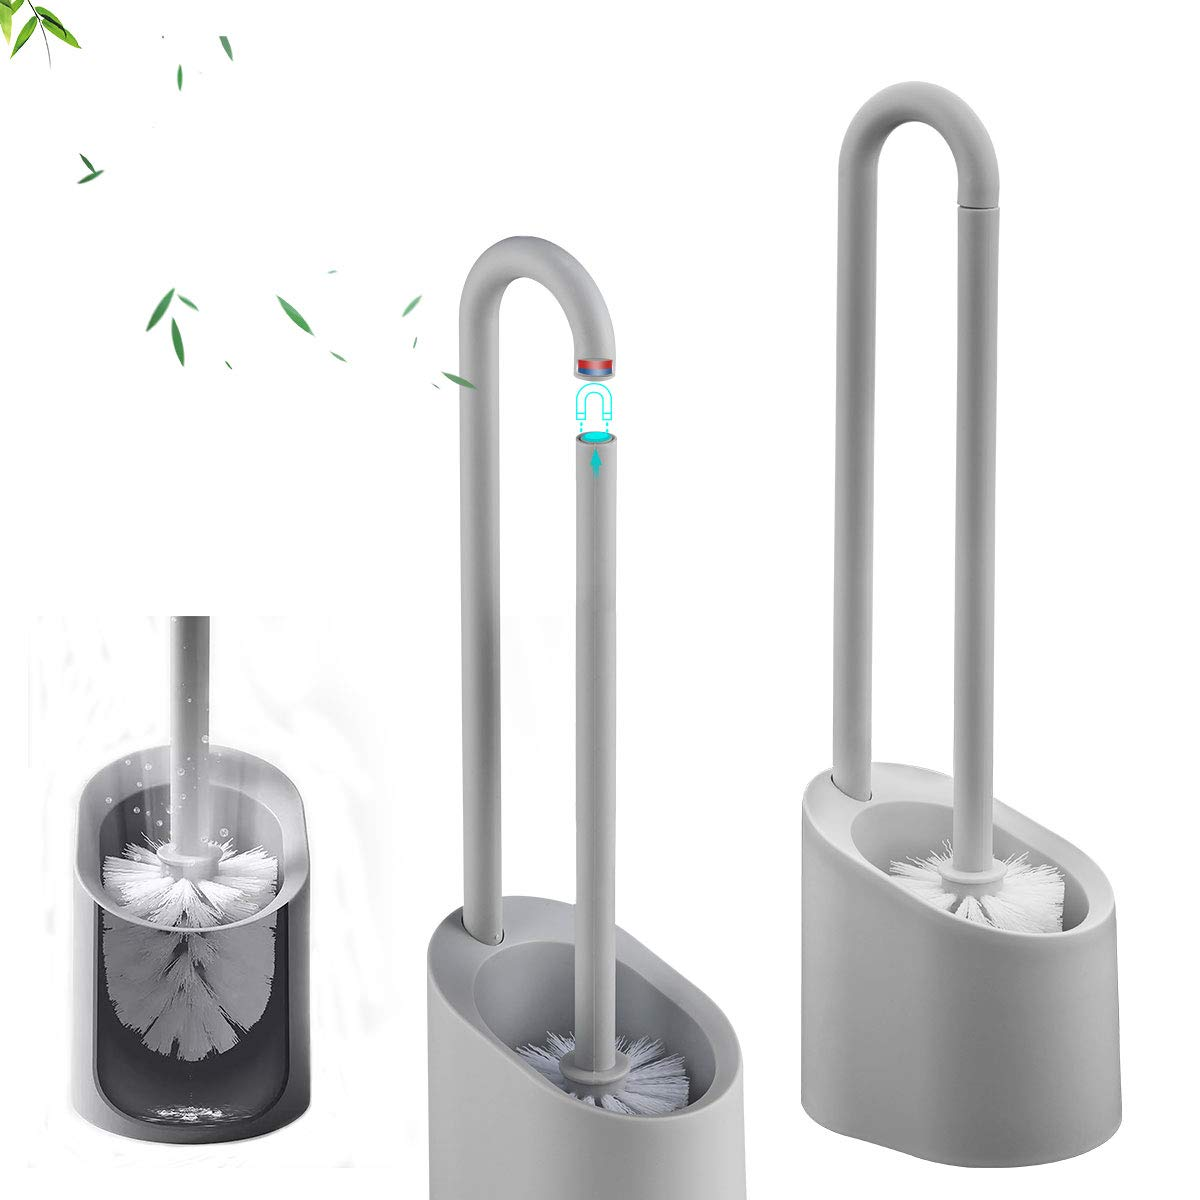 GAPPO Simple Bathroom Magnetic Toilet Bowl Brush Quick Drying Holder with Stand Base Set